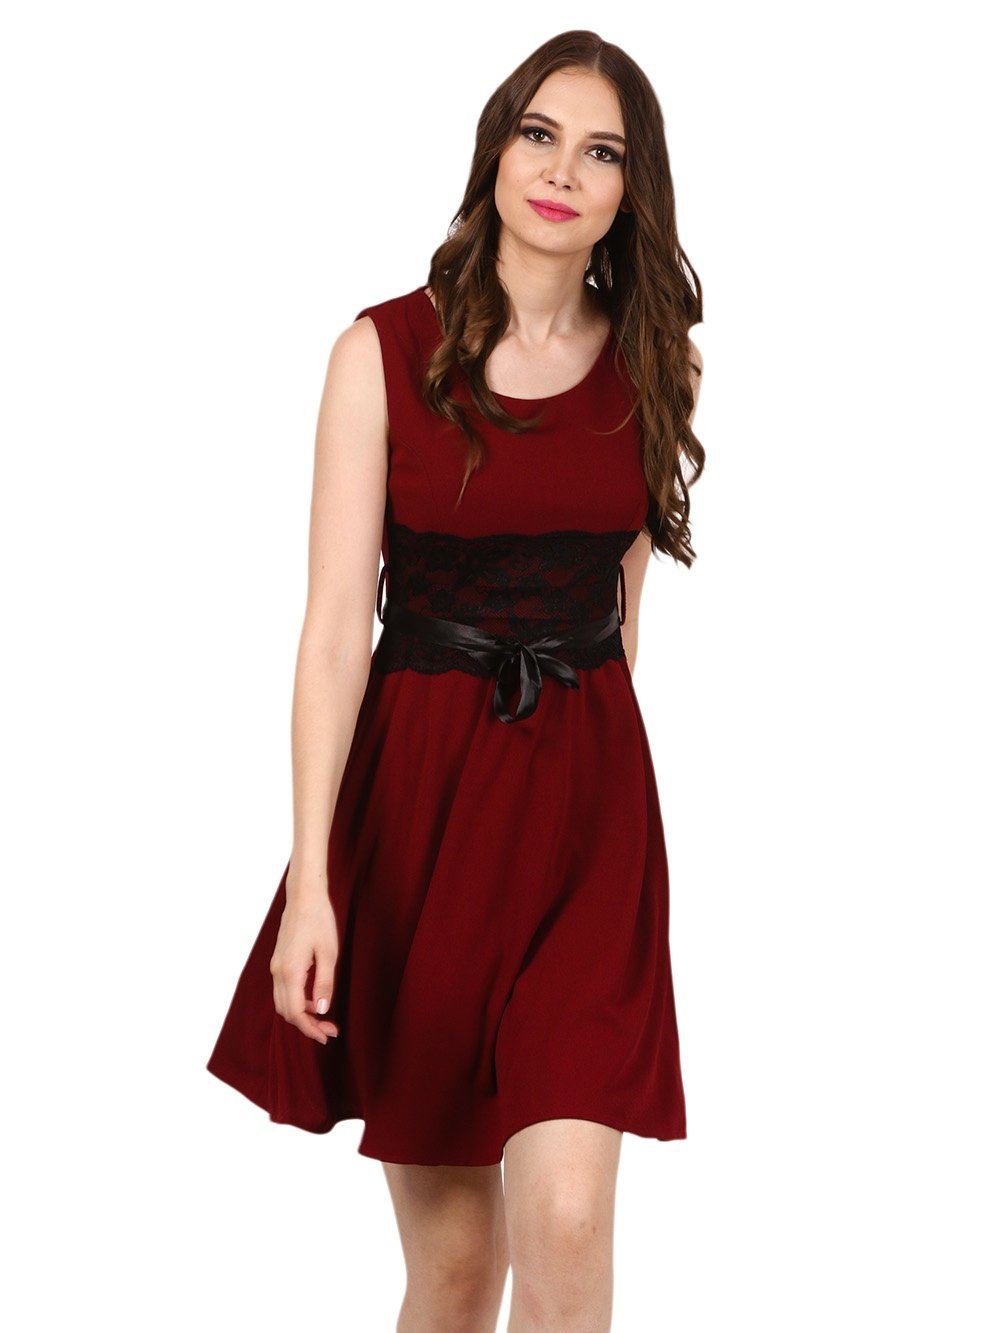 479806beeb them for extremely cheap. This is a good place to buy dresses for going  out.The site has inexpensive clothes, bags making it a one-stop shop for  all your ...